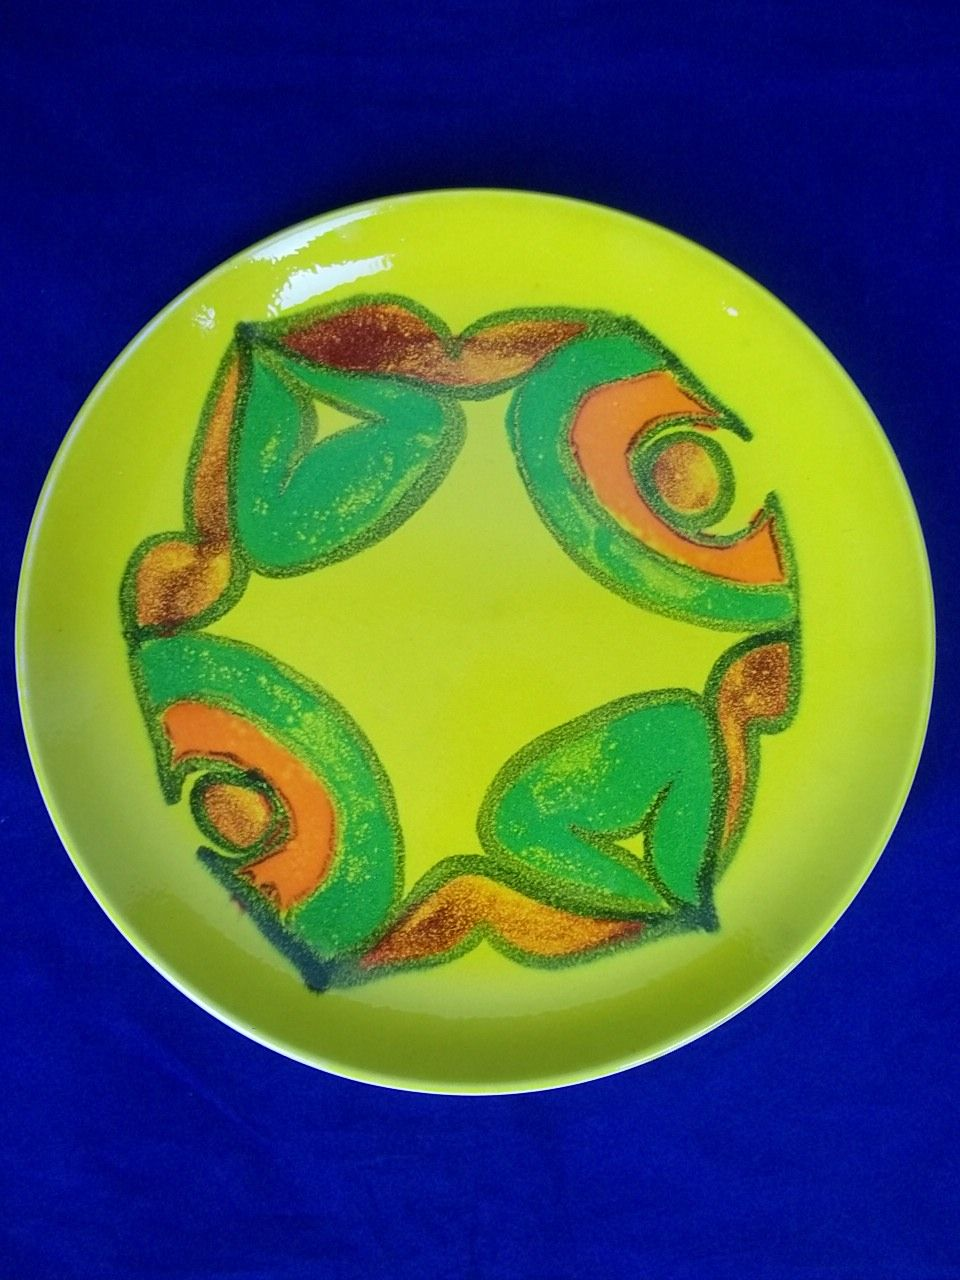 Poole Pottery Yellow Delphis Plate By Valerie Pullen c.1974